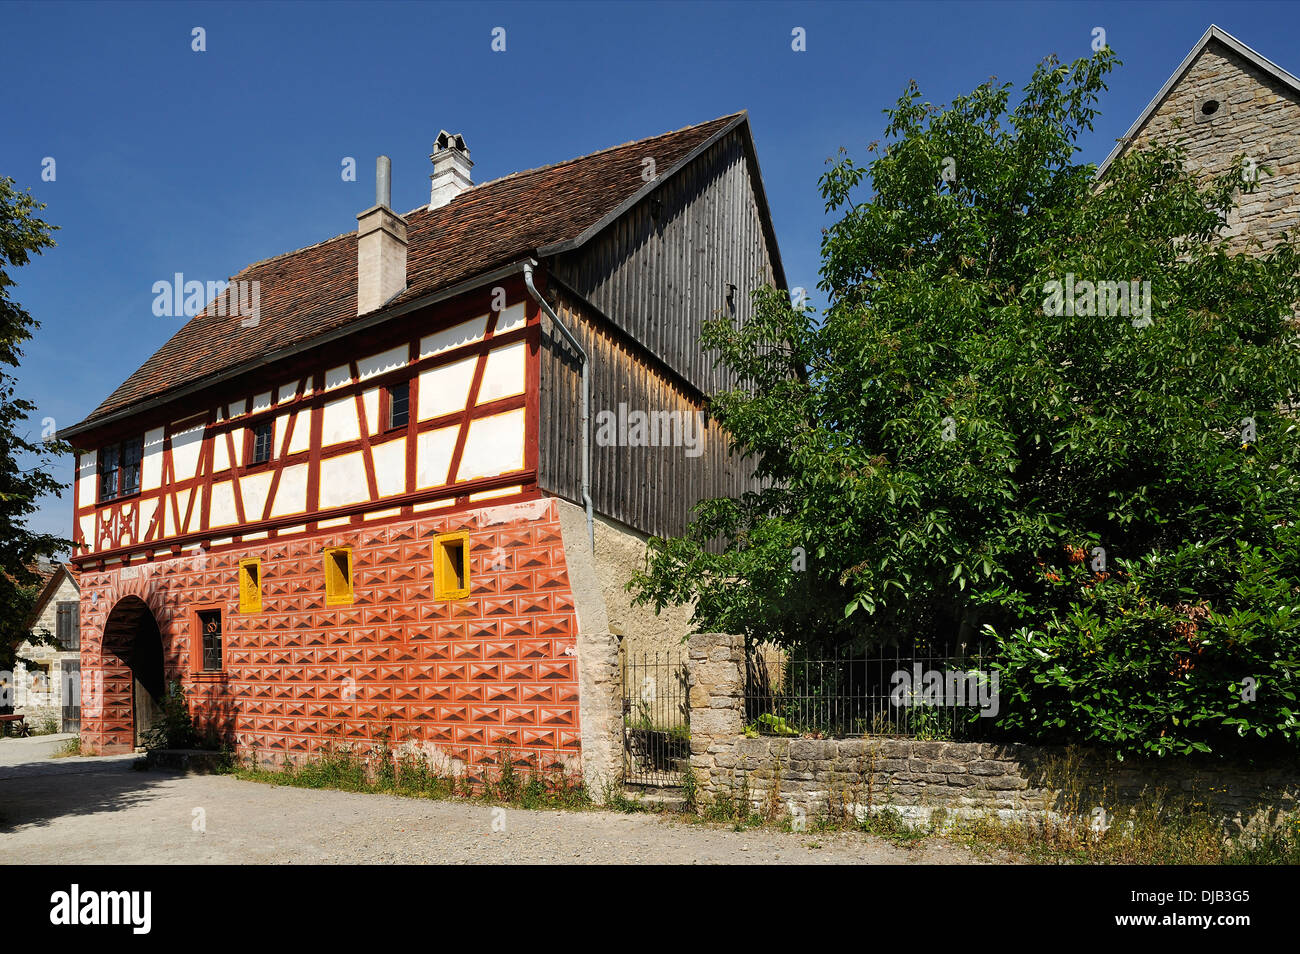 District office building, built in 1571, originally from Obernbreit, relocated to the Franconian Open Air Museum in Bad - Stock Image